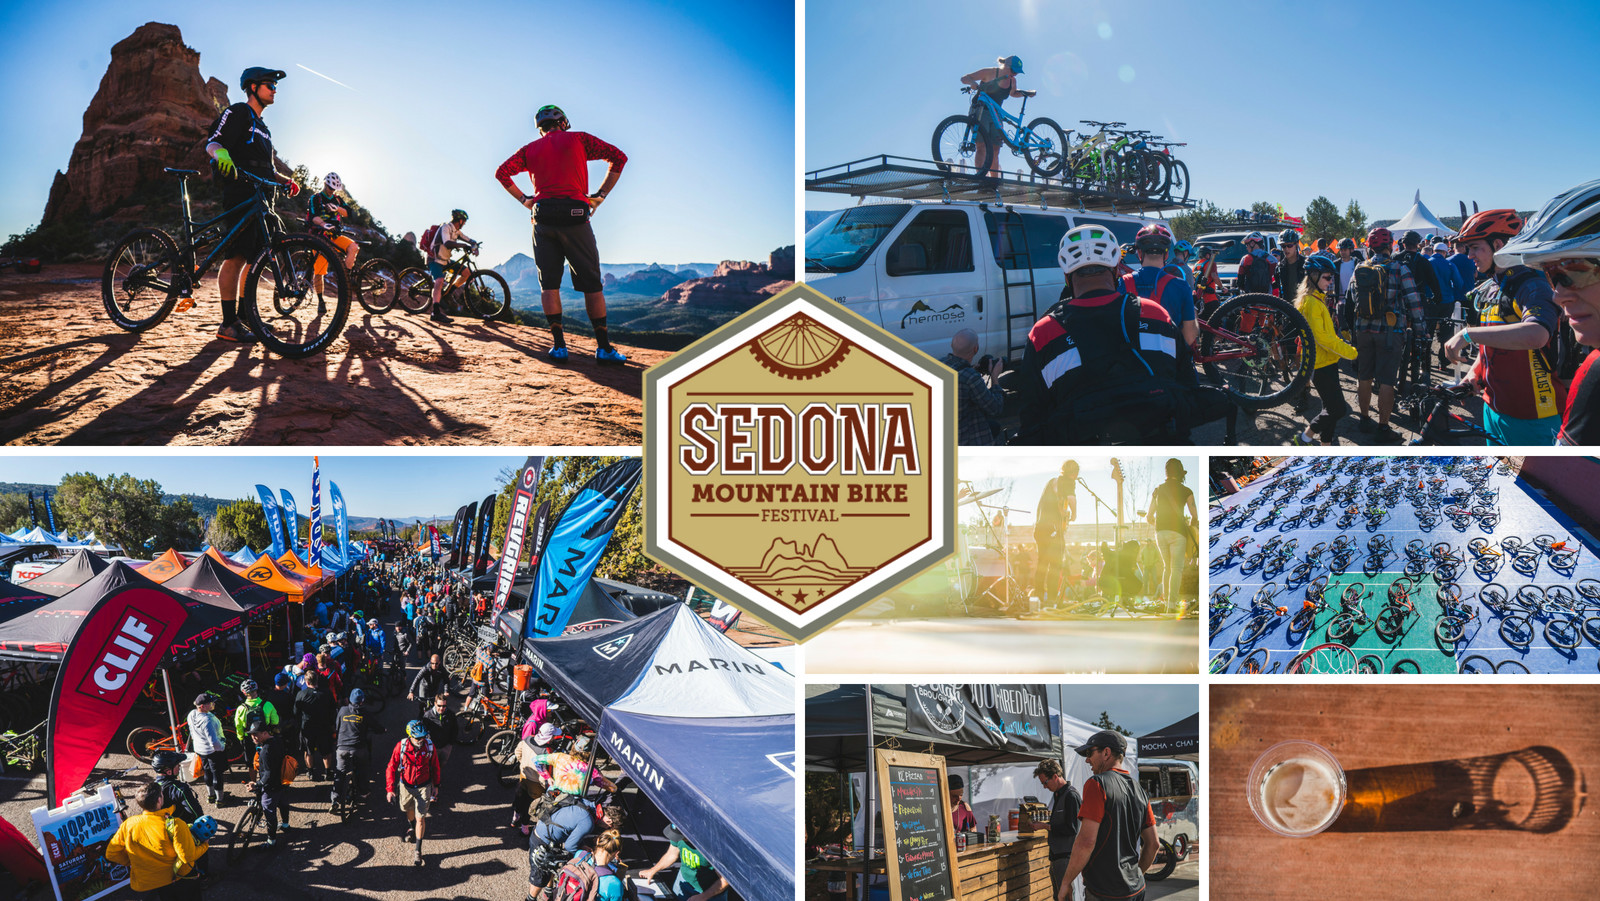 Sedona Mountain Bike Festival Enters Fifth Year, Better than Ever